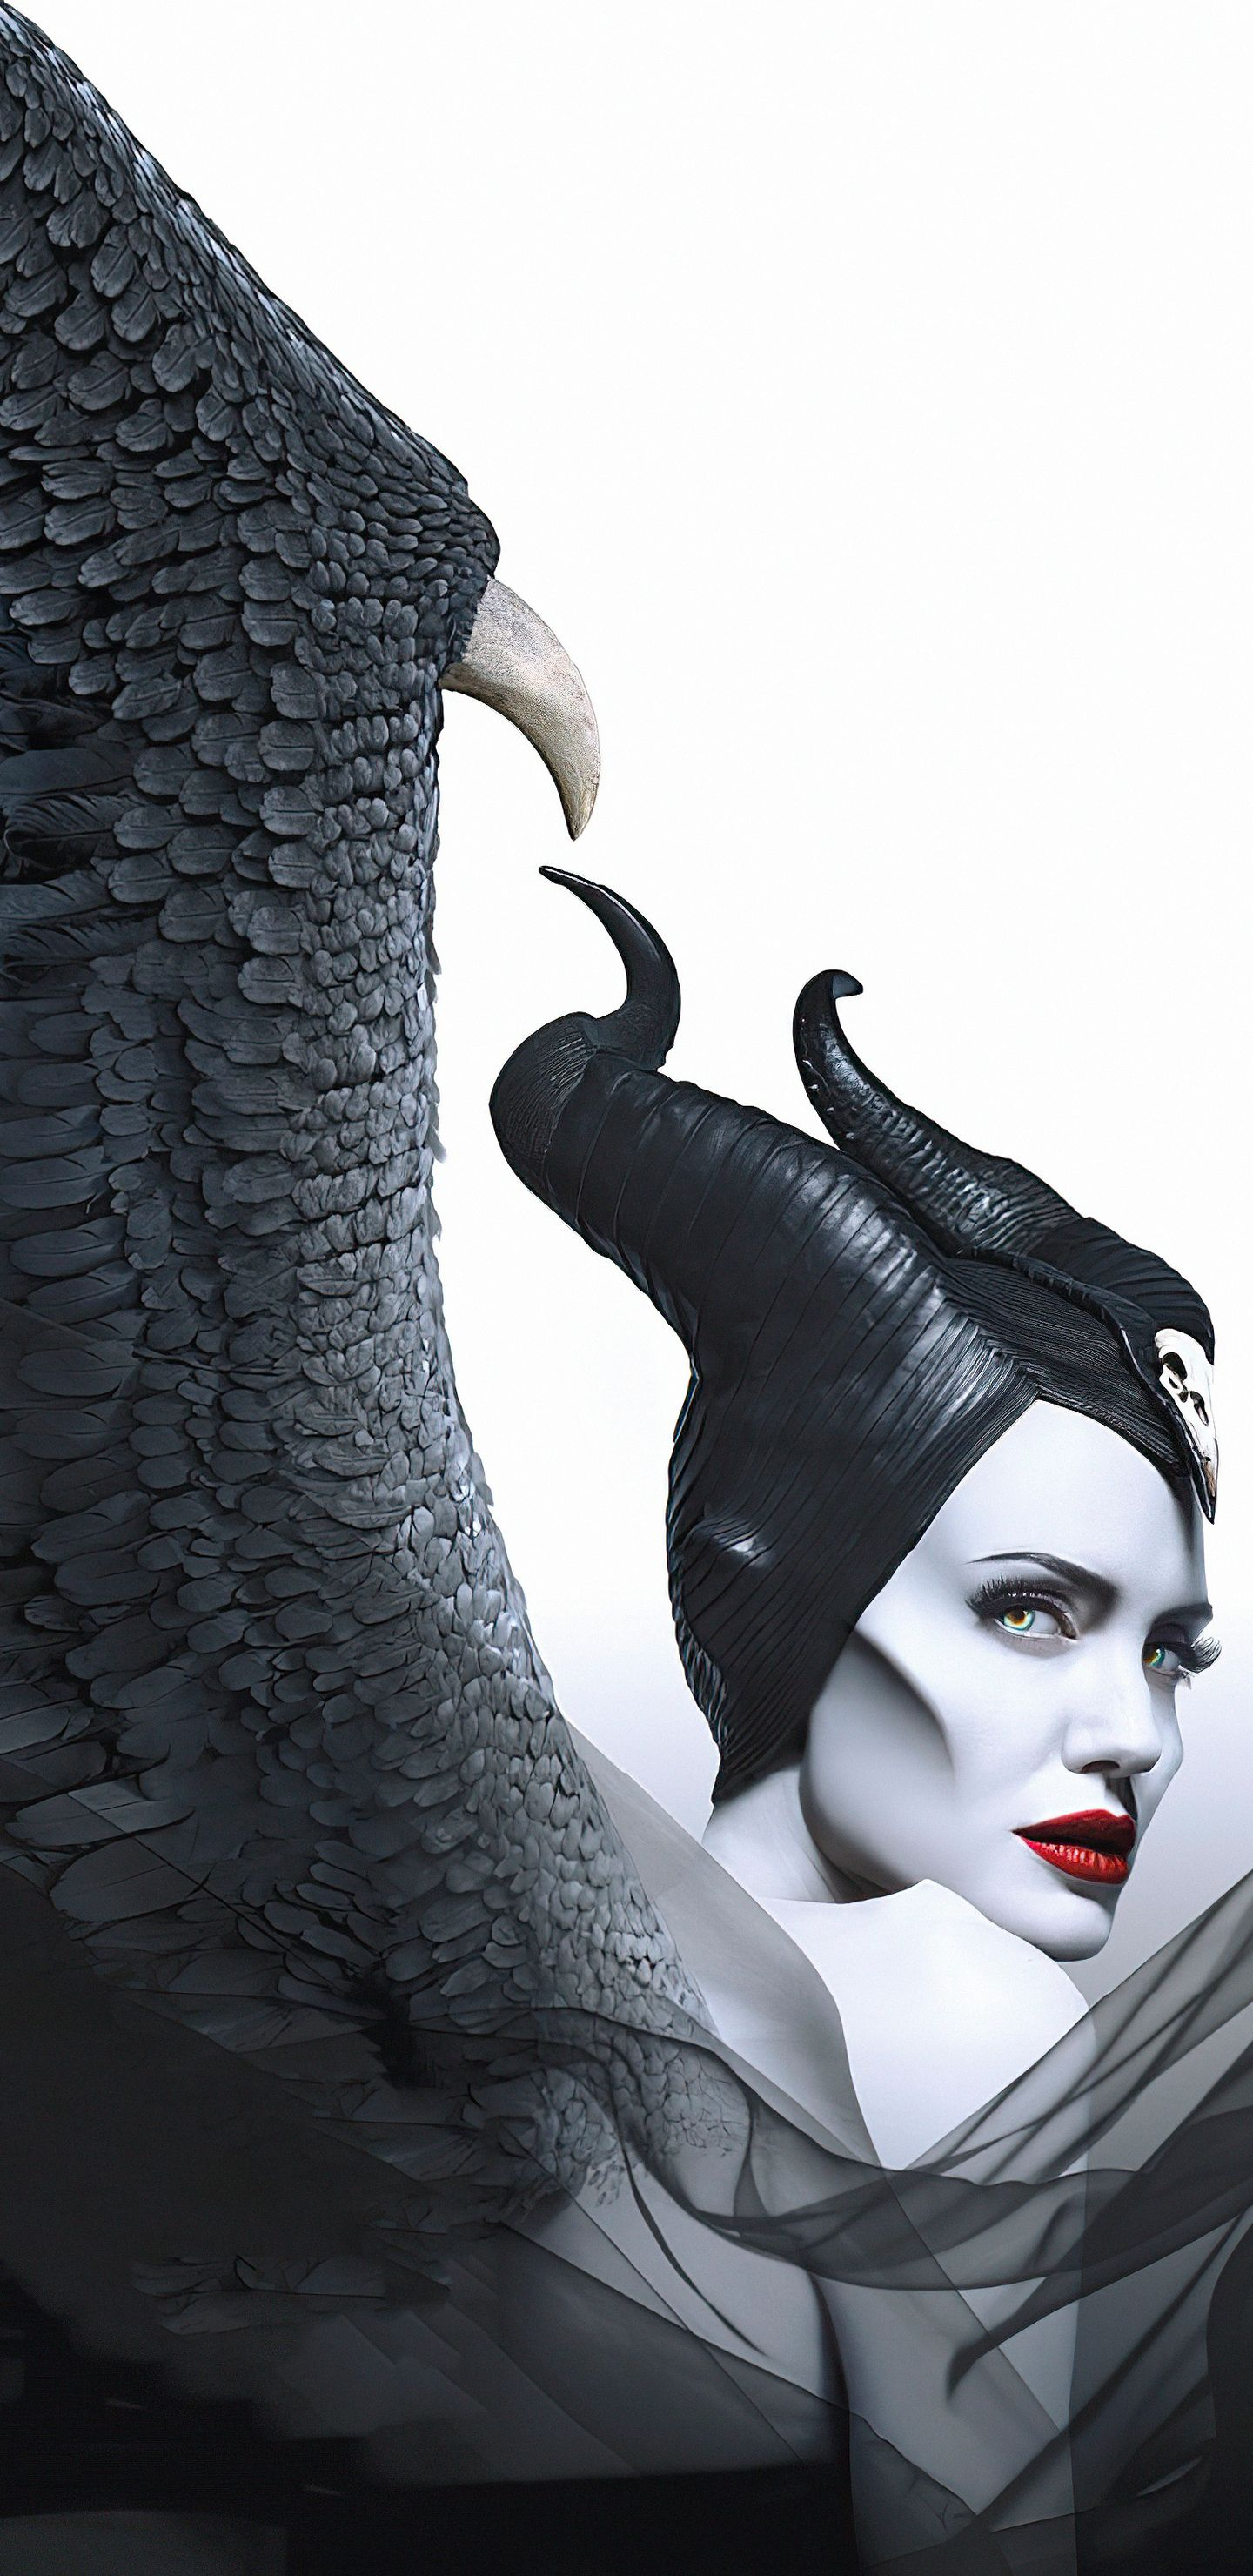 Maleficent Mistress Of Evil 2019 New Poster In 1440x2960 Resolution Maleficent Maleficent Art Maleficent Movie